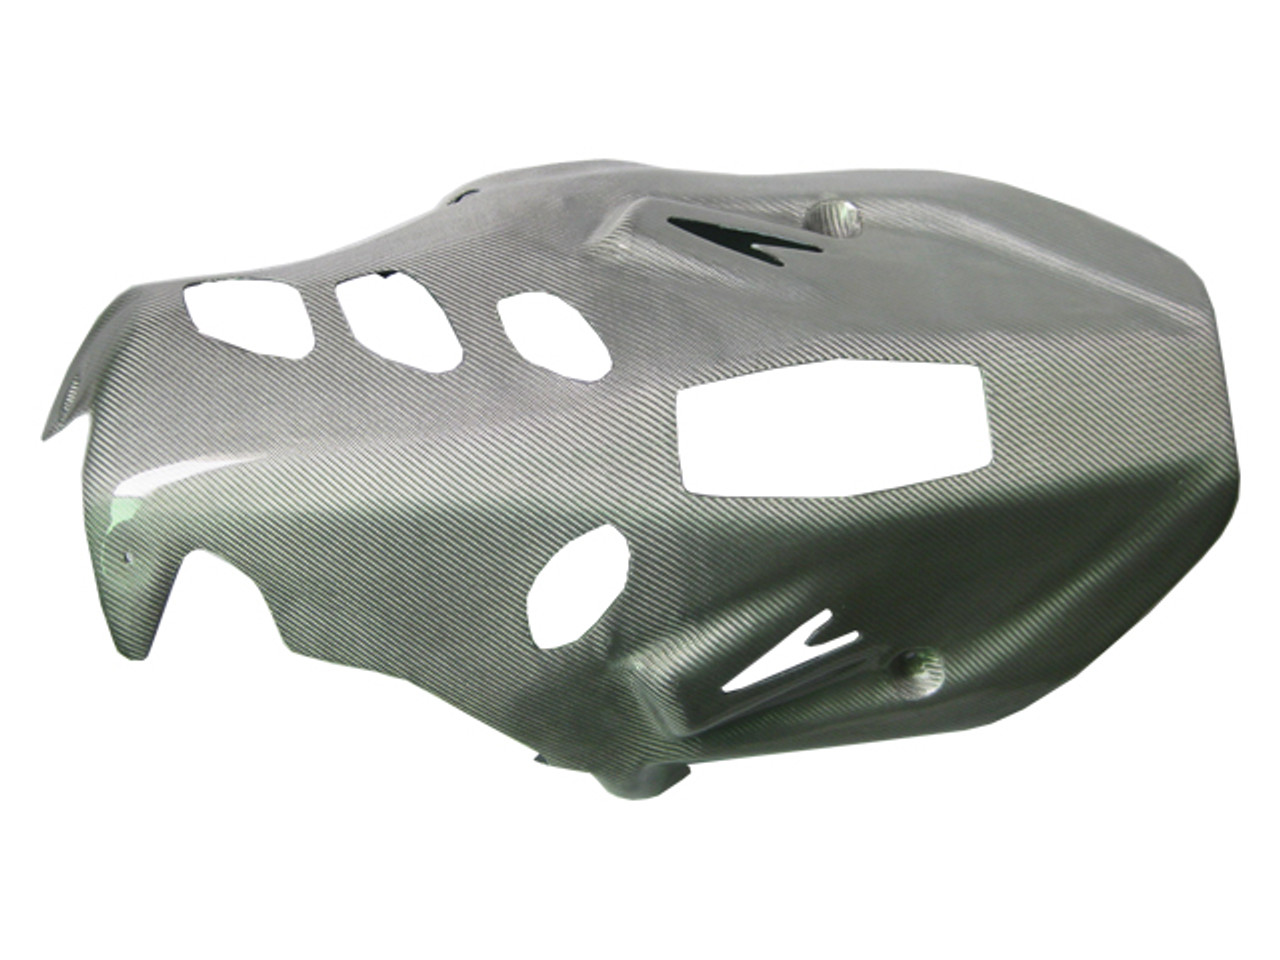 Custom Belly Pan in Carbon with Fiberglass for Suzuki B-King 07-12